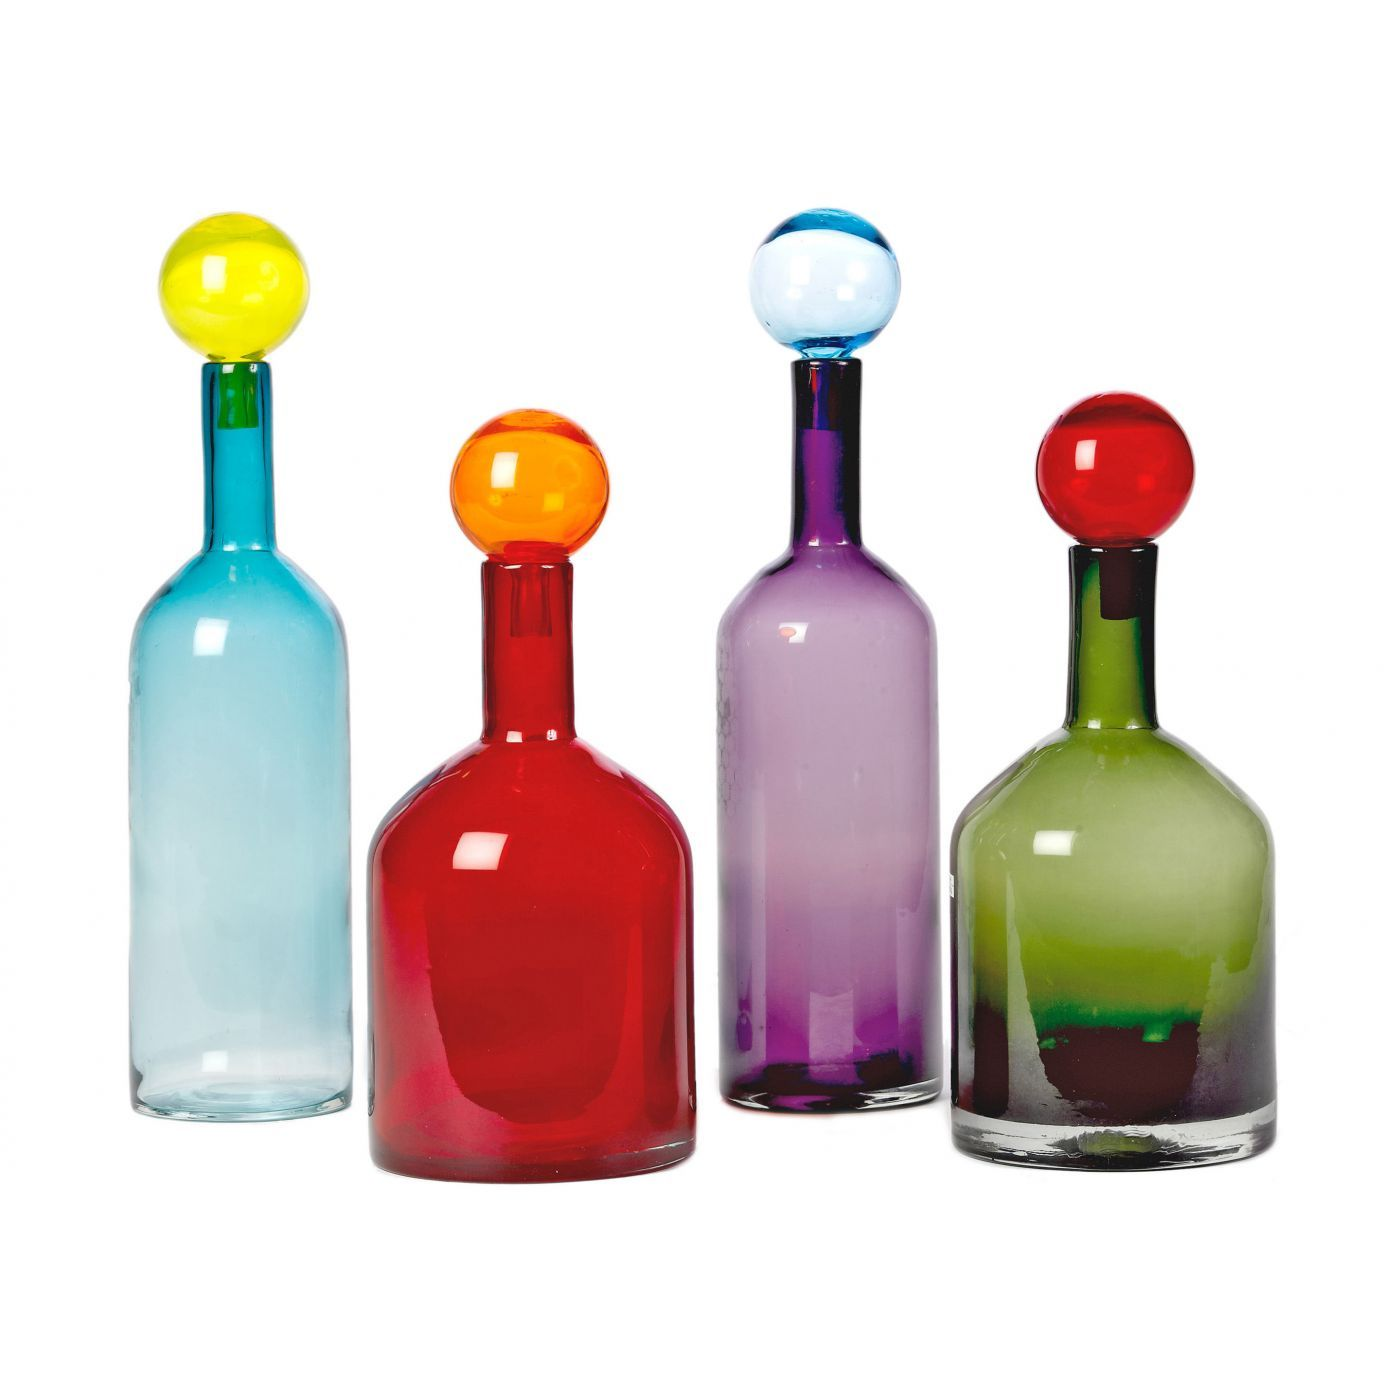 Set Of 4 Mouth Blown Glass Bottles Varying In Size With Round Glass Stoppers Artisinal Make Ensures Bubble Bottle Colored Glass Bottles Brown Glass Bottles